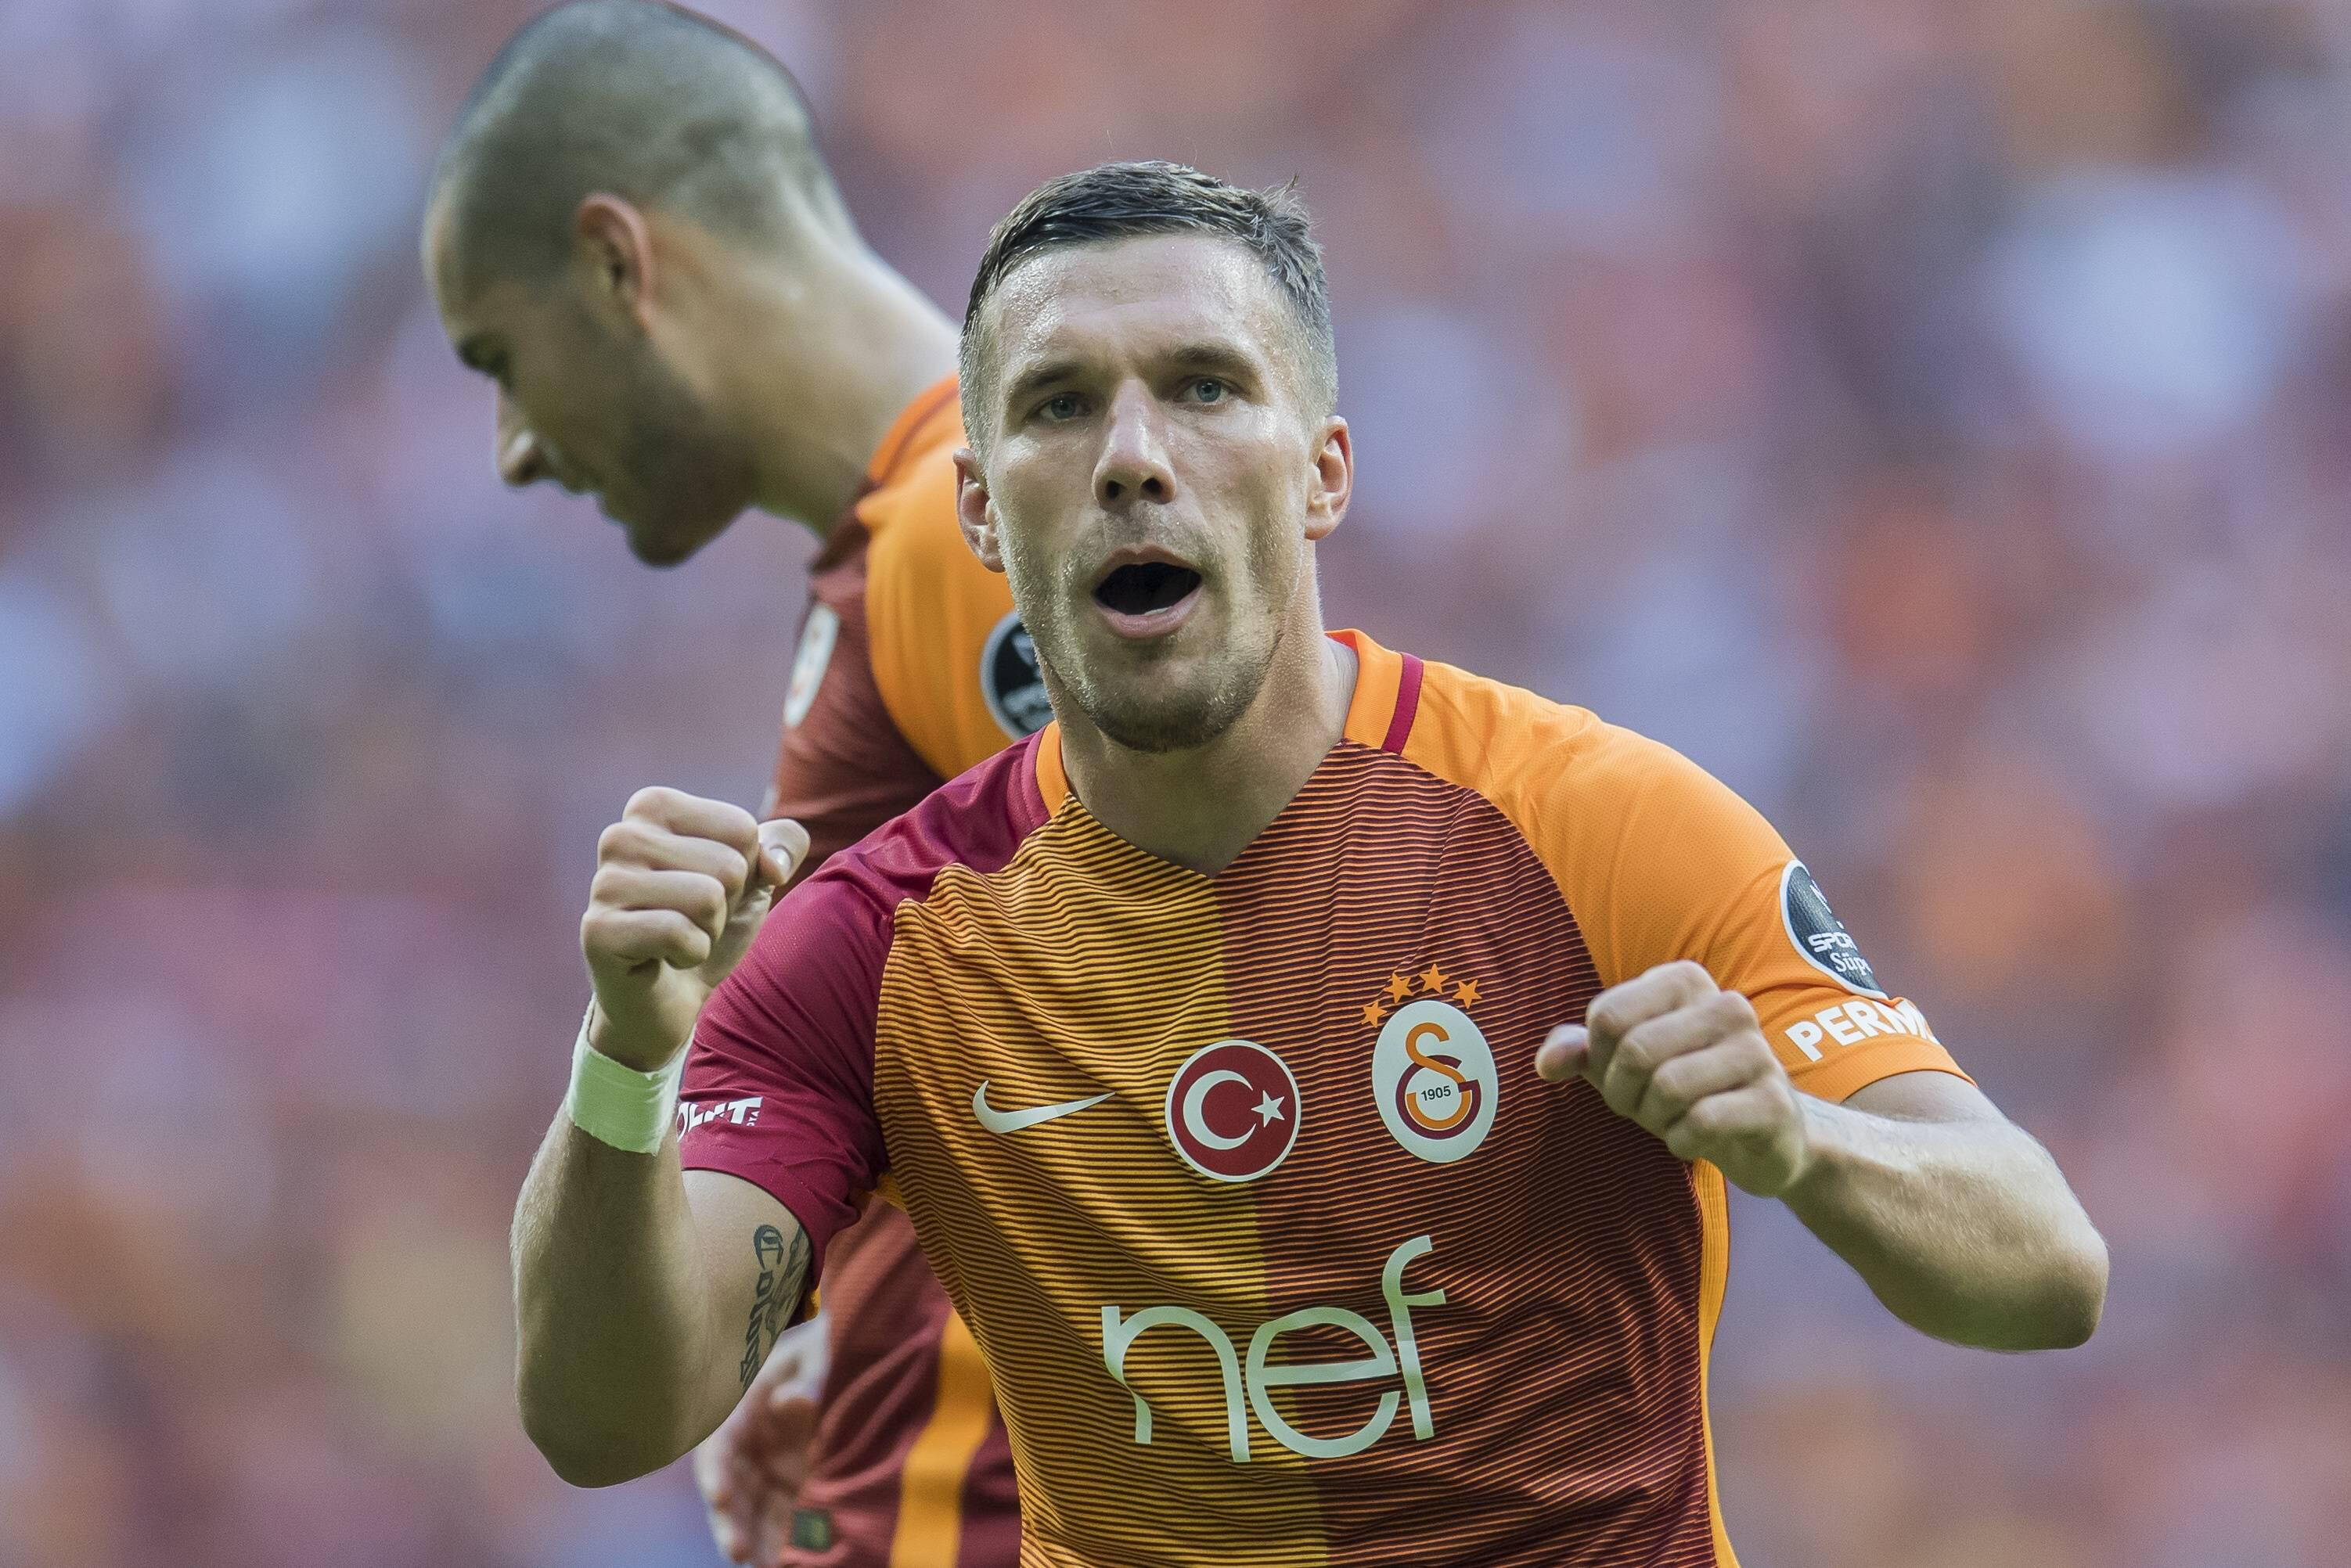 Bild zu Lukas Podolski, Transfer News, Fussball, China